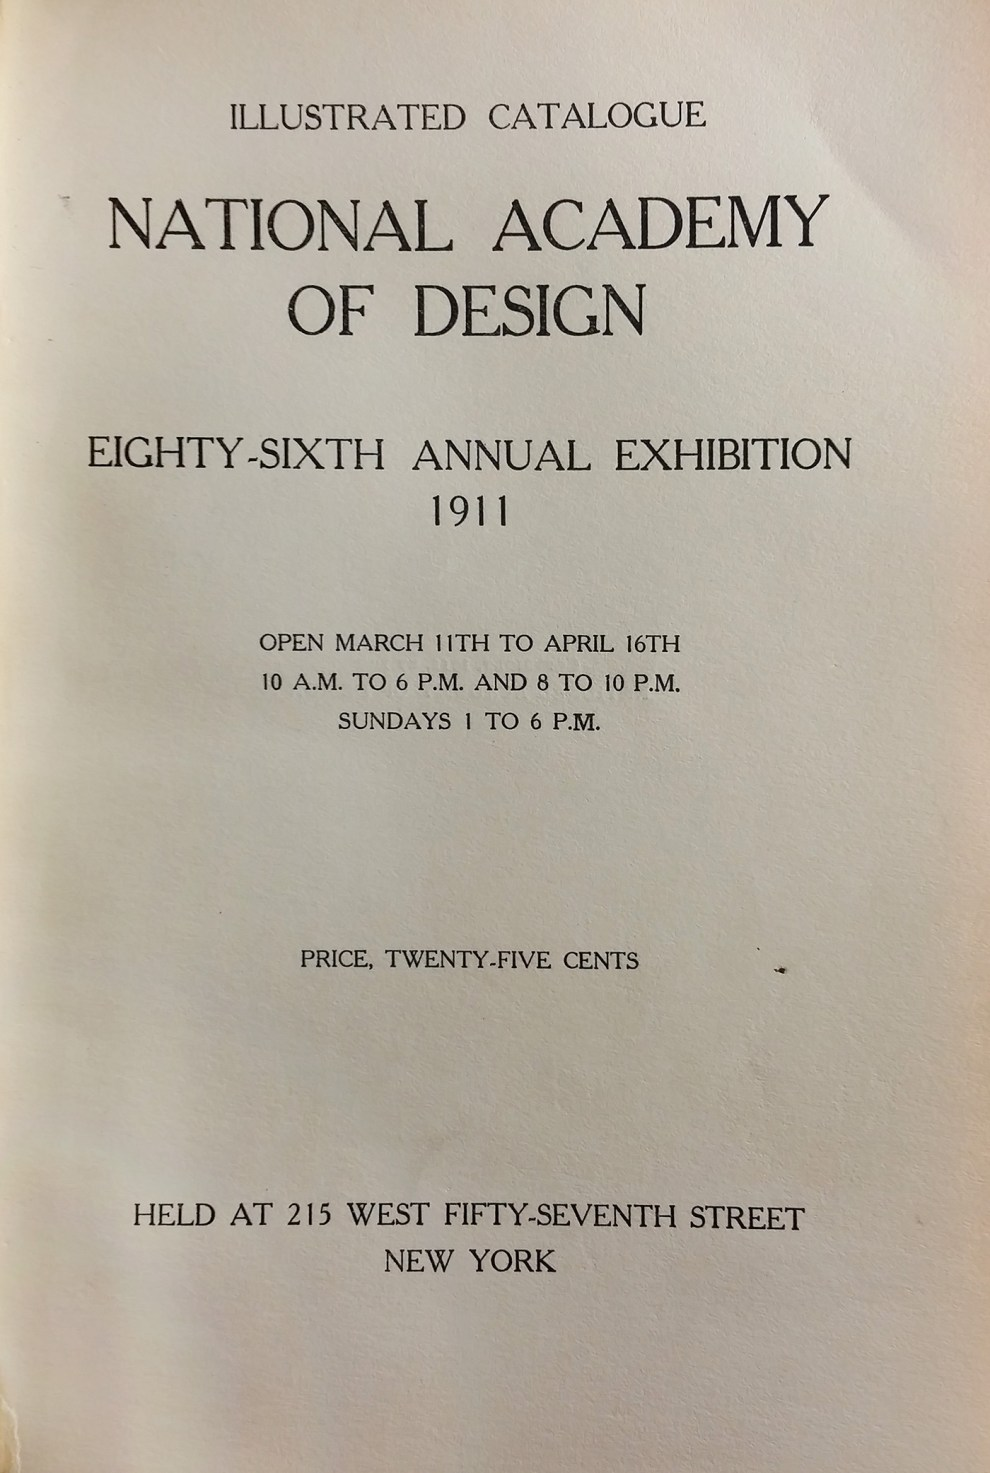 "1911 National Academy of Design, New York, NY, ""Eighty-Sixth Annual Exhibition"", March 11 - April 16"